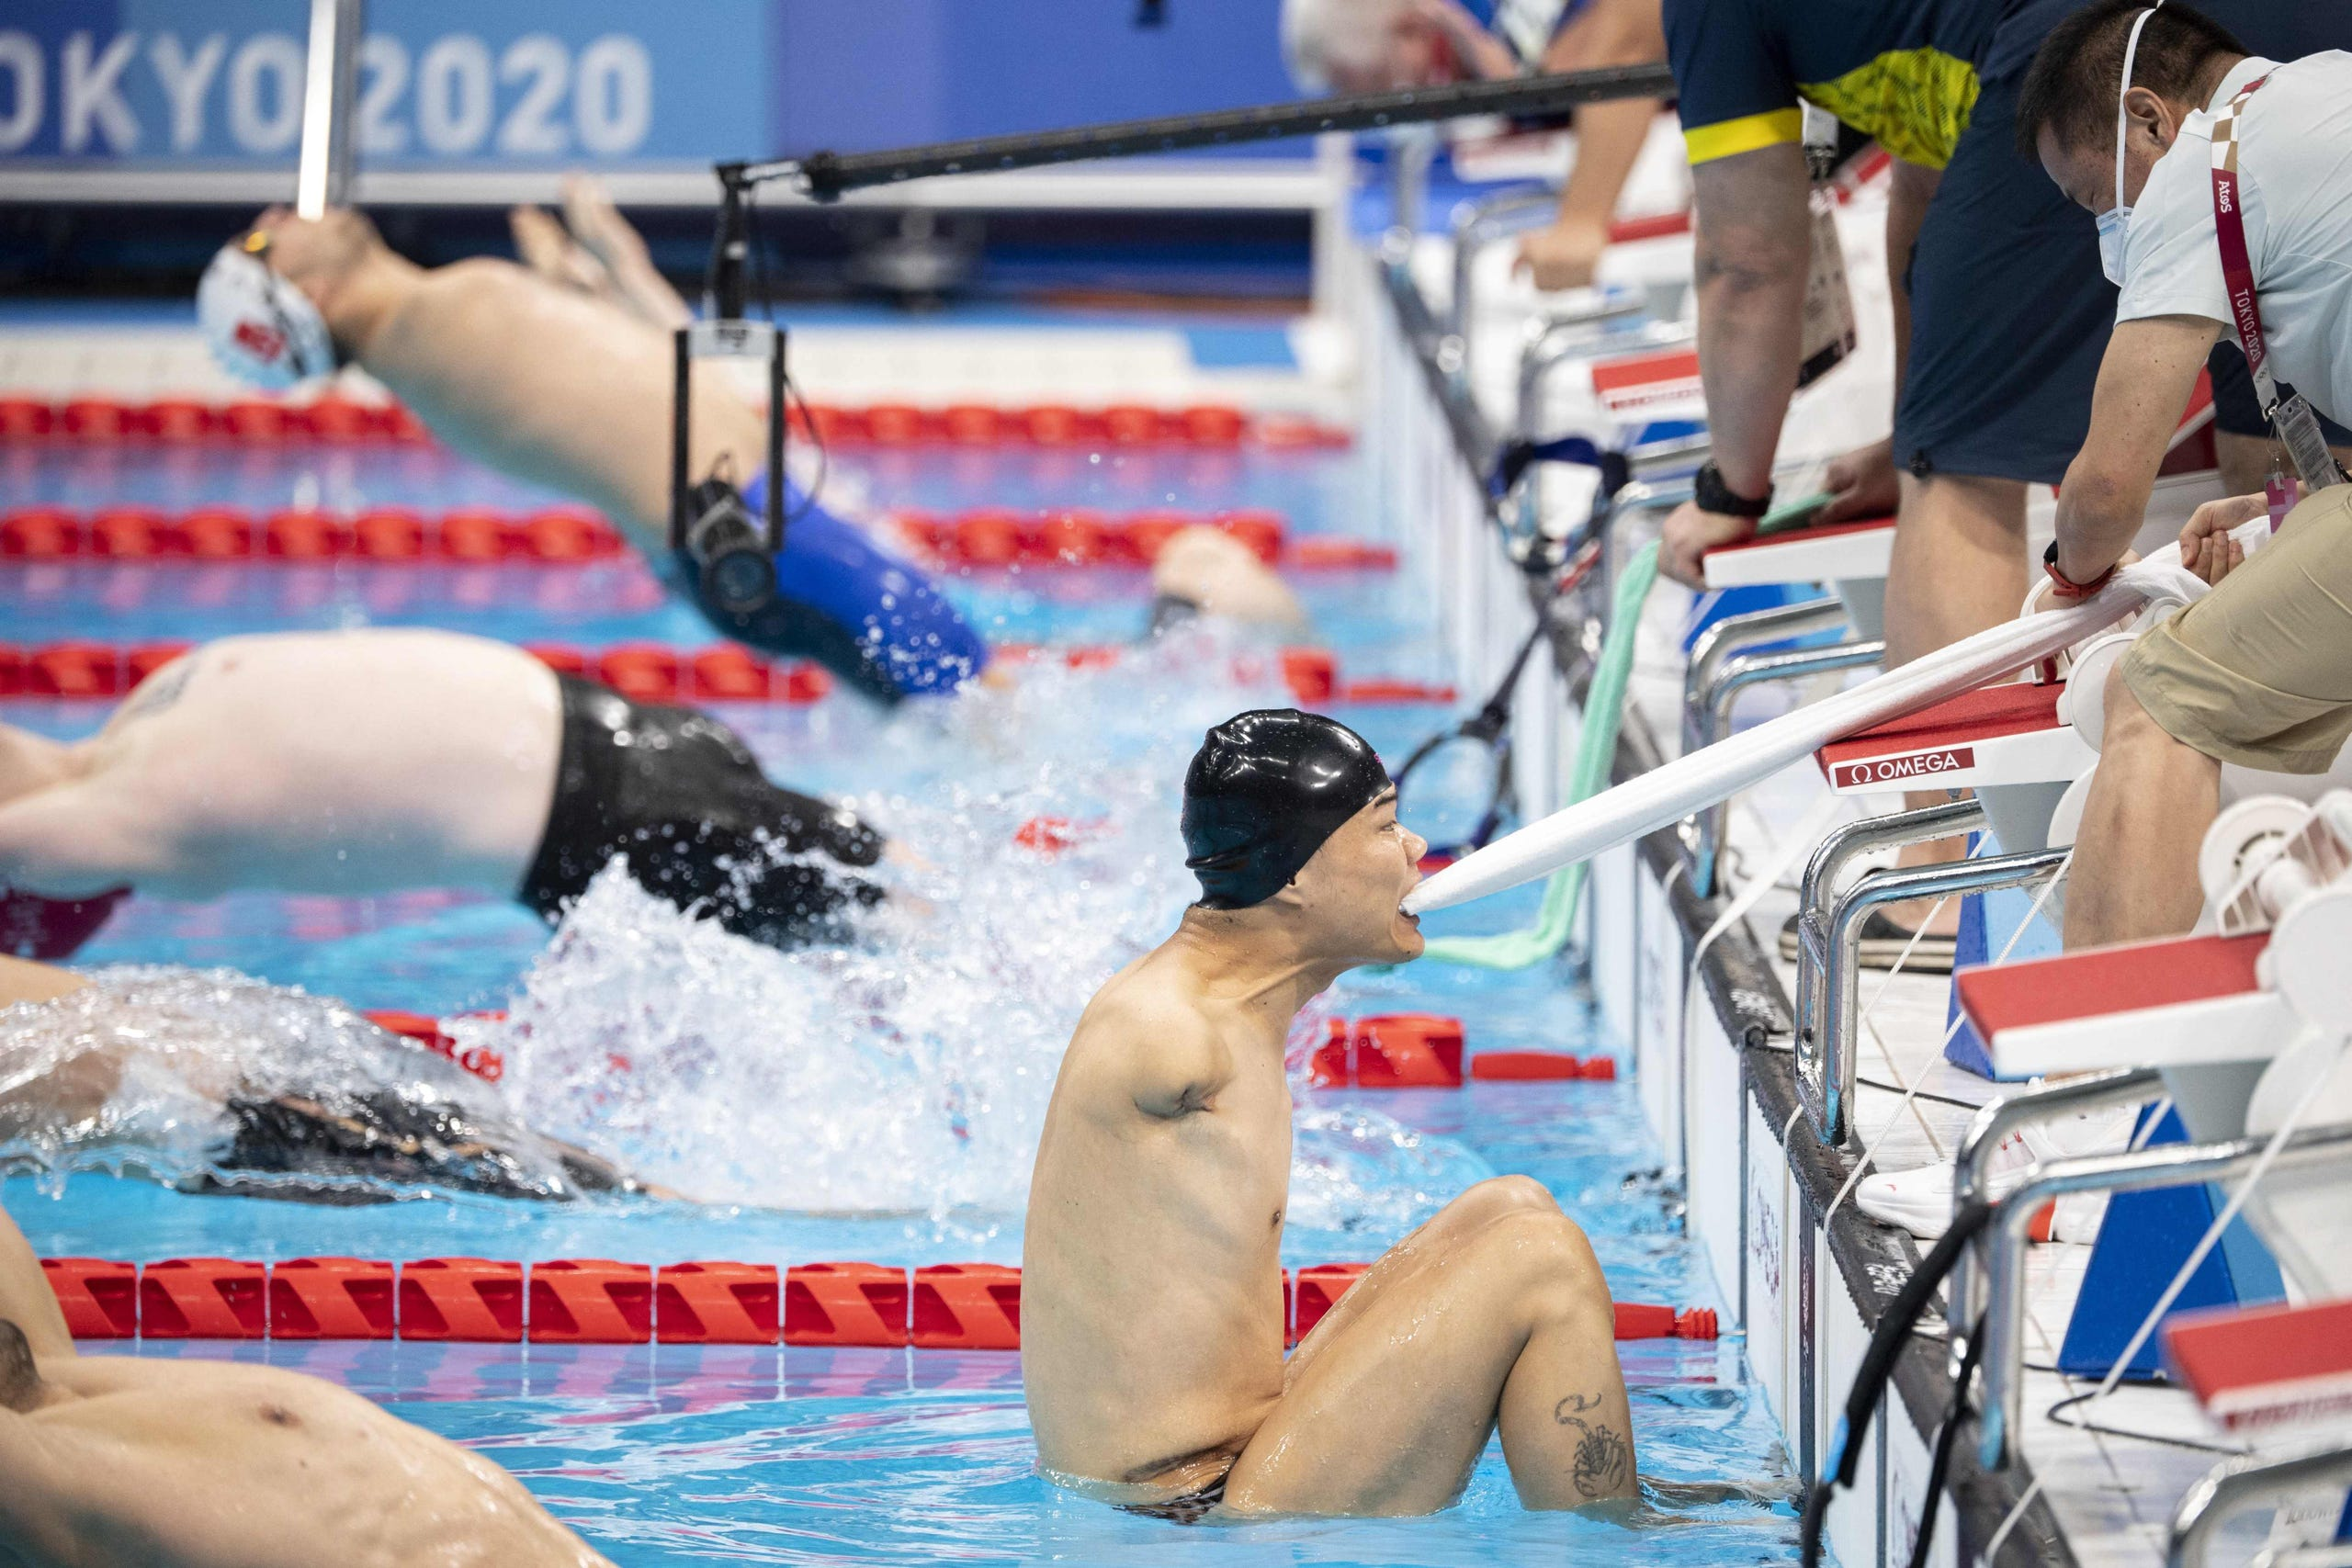 August 30, 2021: China's Tao Zheng competes in the men's 50m backstroke S5 swimming heat at the Tokyo 2020 Paralympic Games in the Tokyo Aquatics Centre in Tokyo.